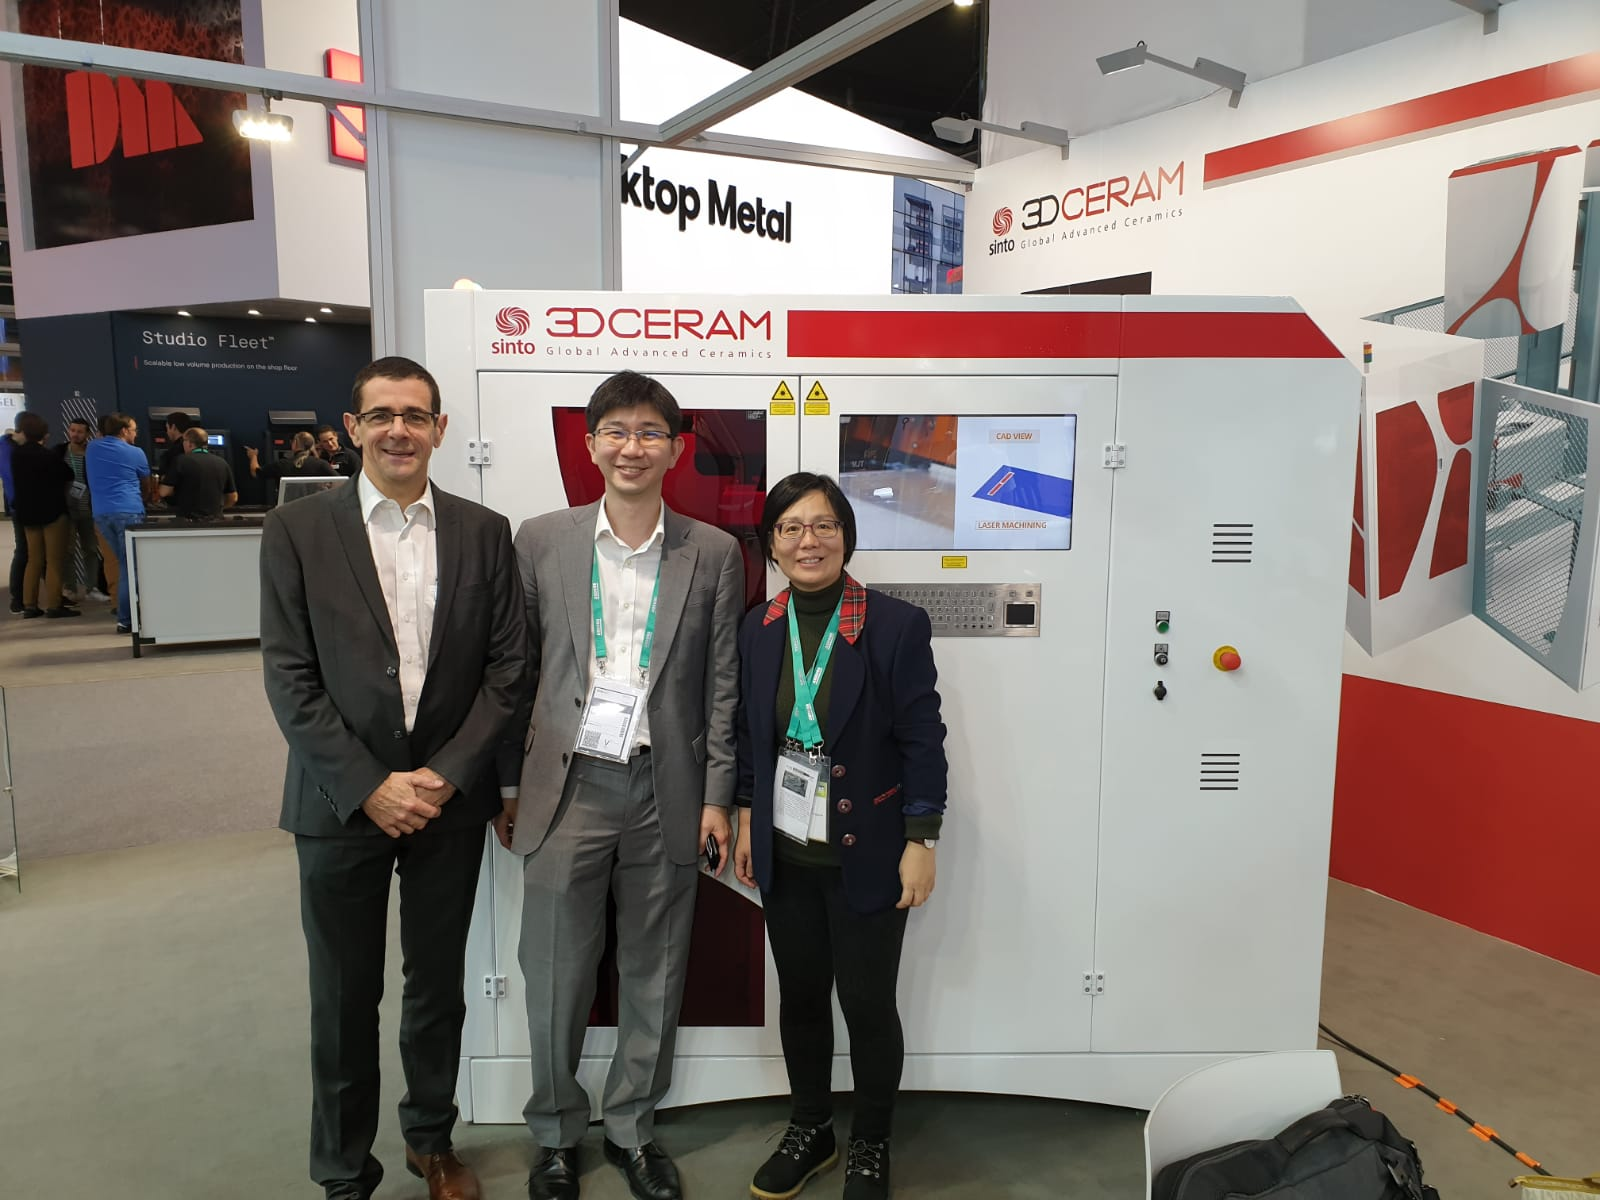 Richard Gaignon (L) from 3DCeram Sinto, Sean Looi, and Dr. Ma Sha (R) from NUS.